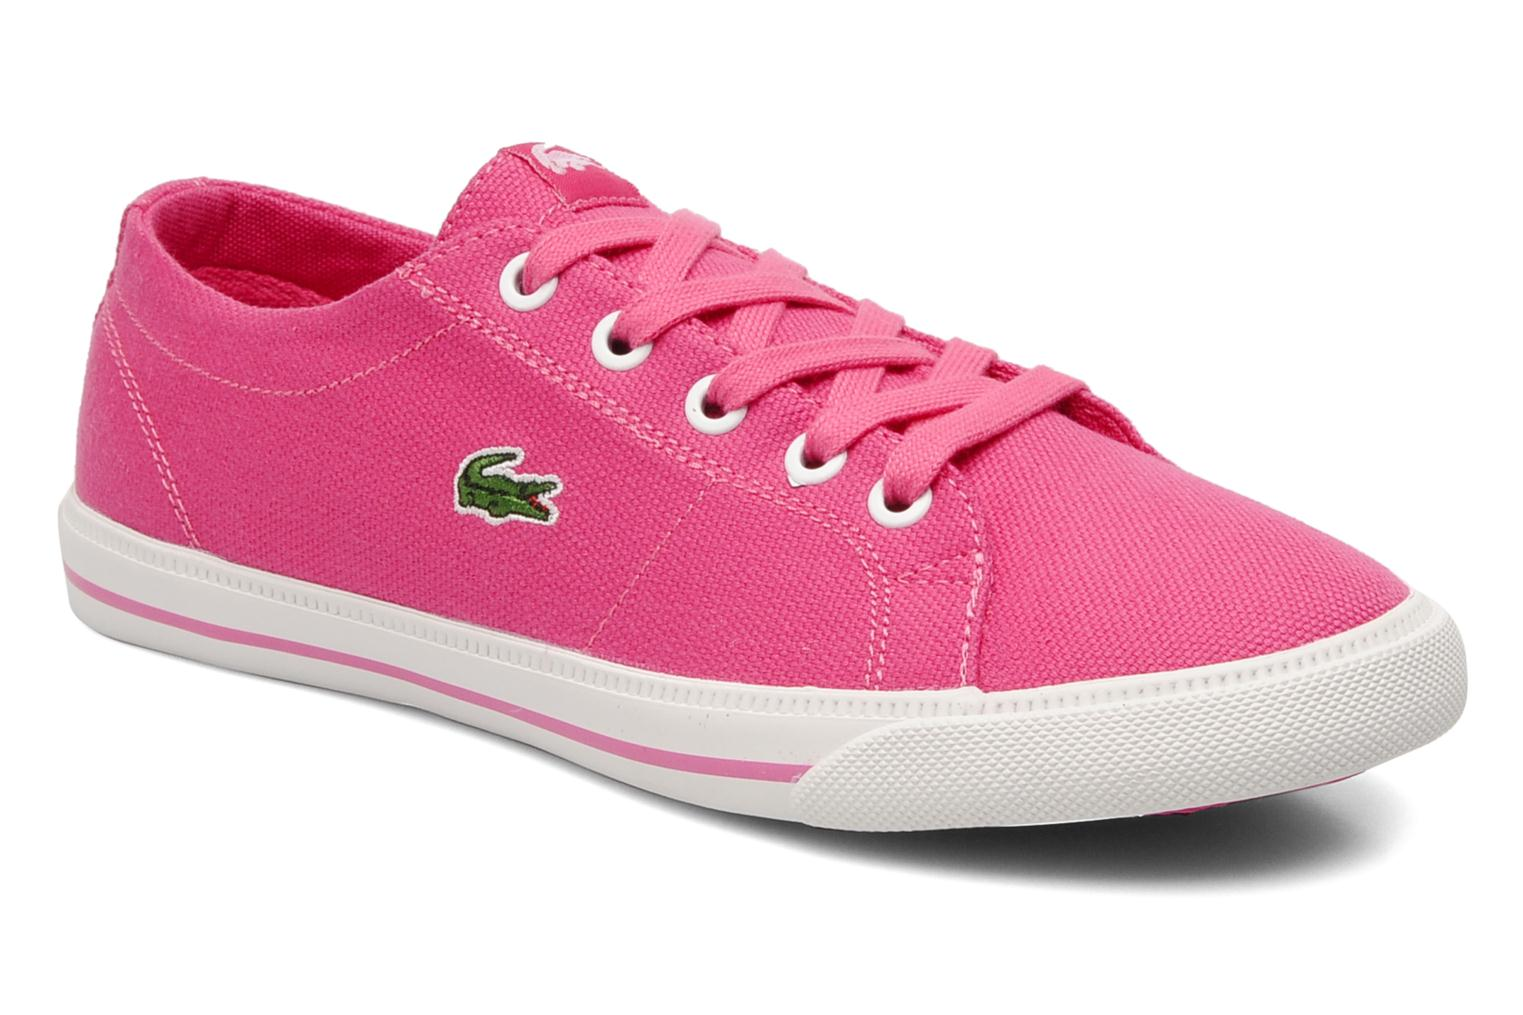 Lacoste Chaussure Femme Rose